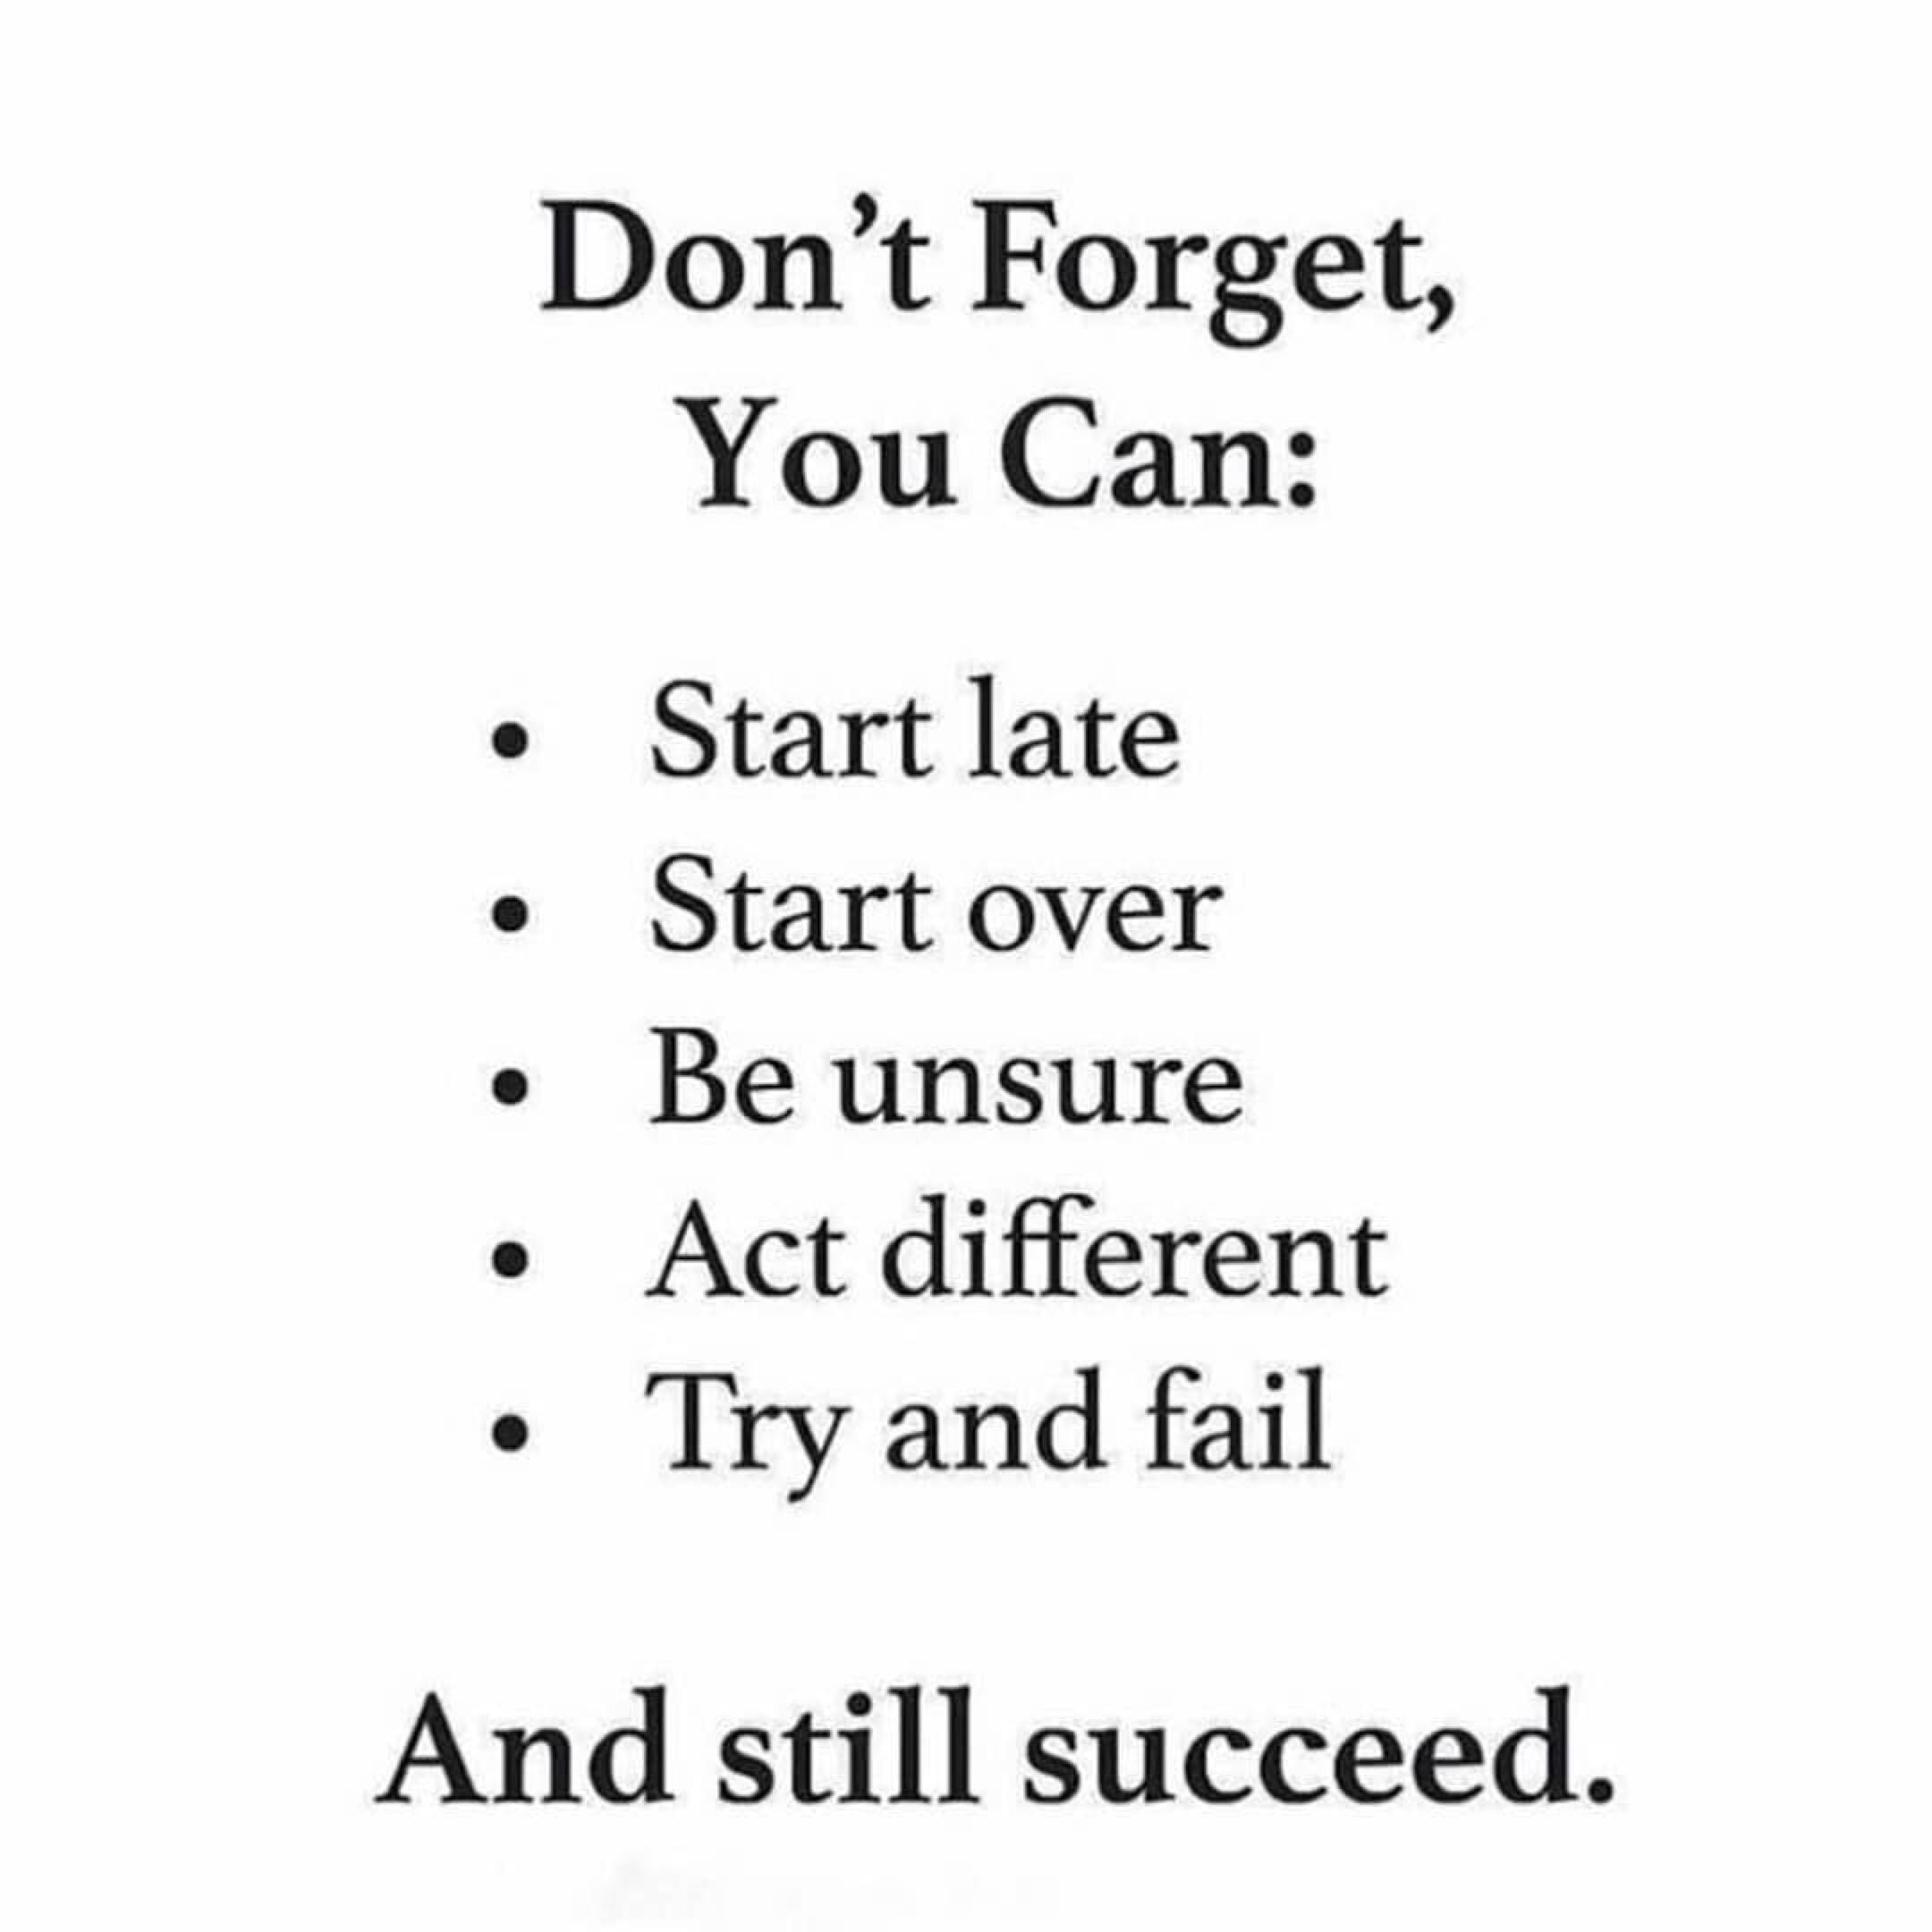 [Image] You can and will succeed